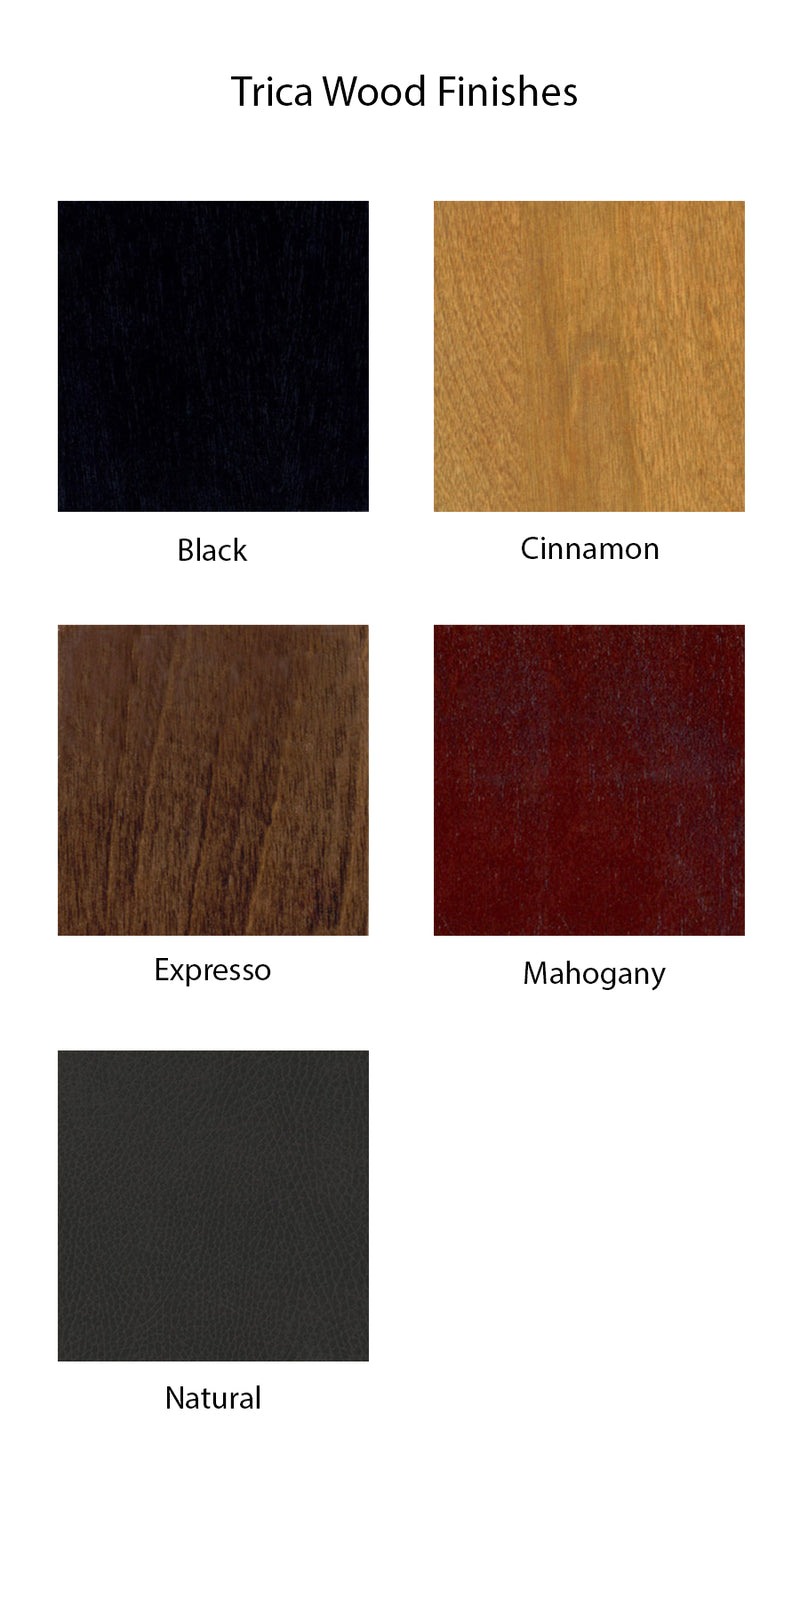 products/wood-finishes-trica_d0947132-e259-457b-8028-480556a9725c.jpg